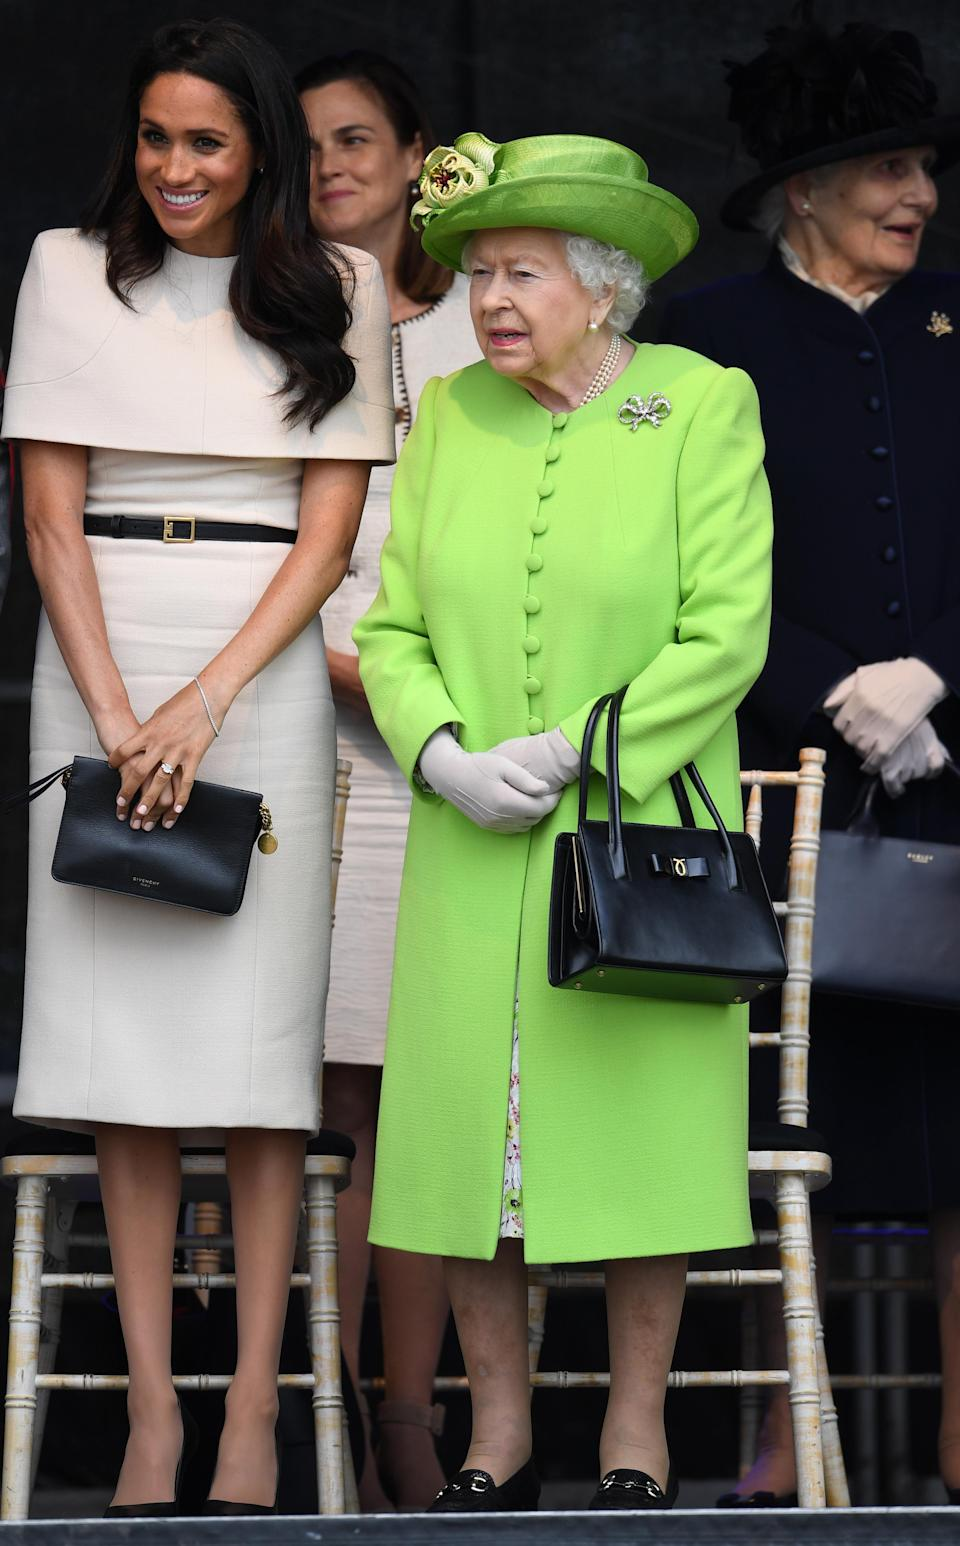 <p>For Meghan Markle's debut solo engagement with Queen Elizabeth II on 14 June, she chose a Givenchy cape-dress. The former 'Suits' star accessorised the look with a black clutch and co-ordinating heels by American designer Sarah Flint. The Queen on the other hand dazzled in a lime green coat and spring-ready floral dress. <em>[Photo: Getty]</em> </p>